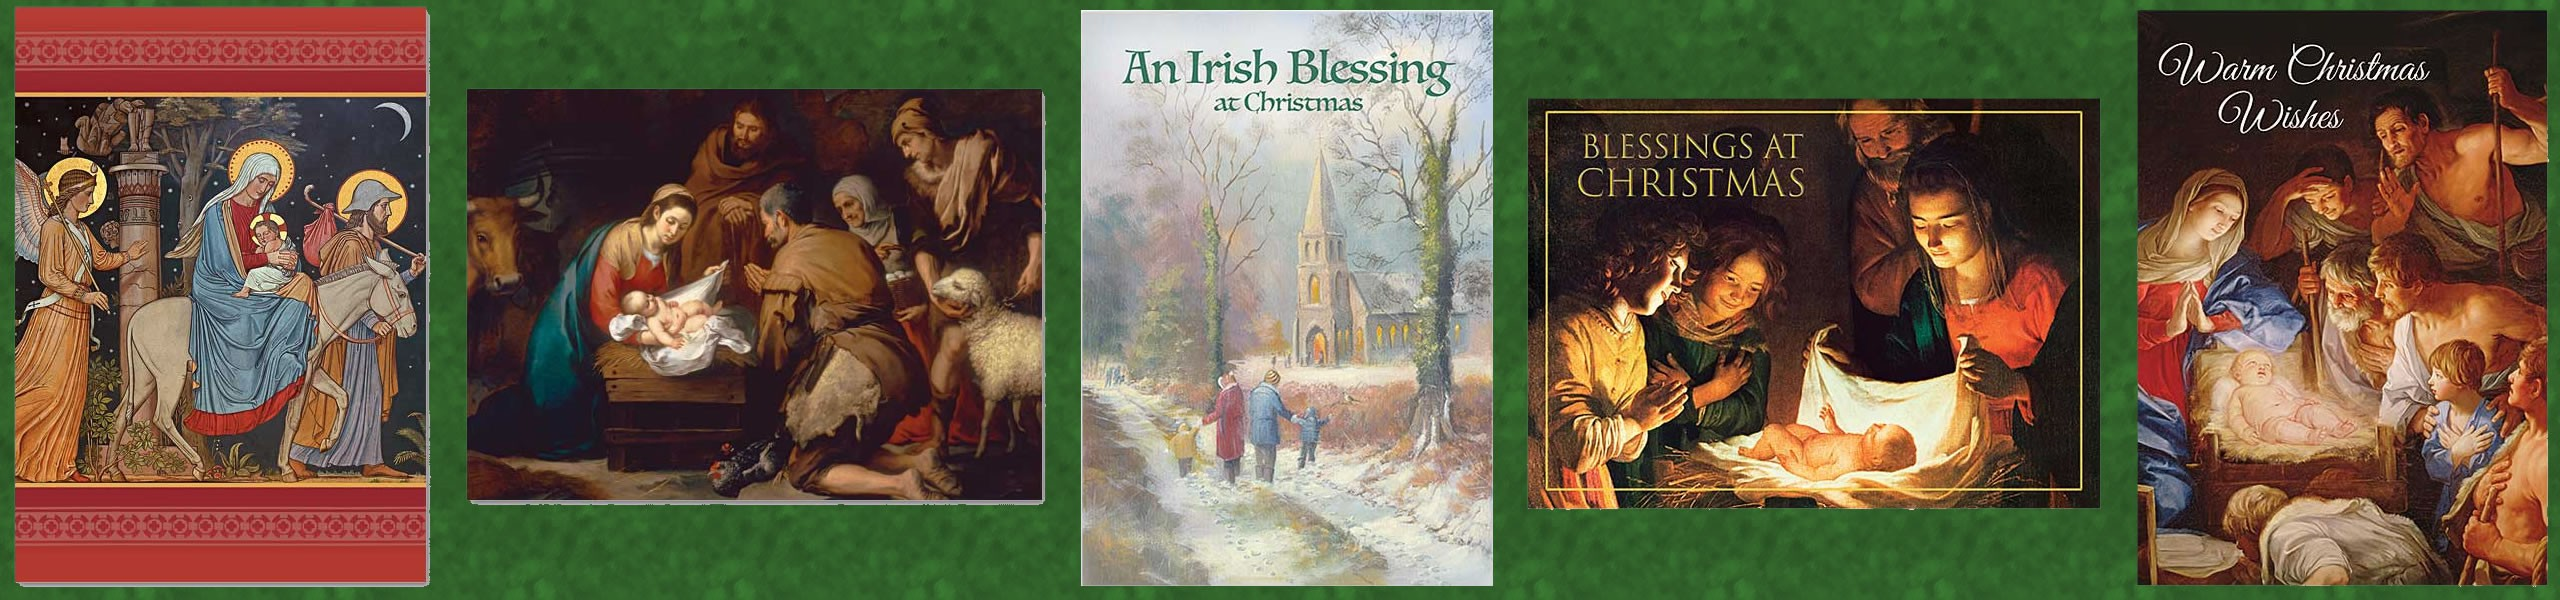 Miracle of Christmas Cards